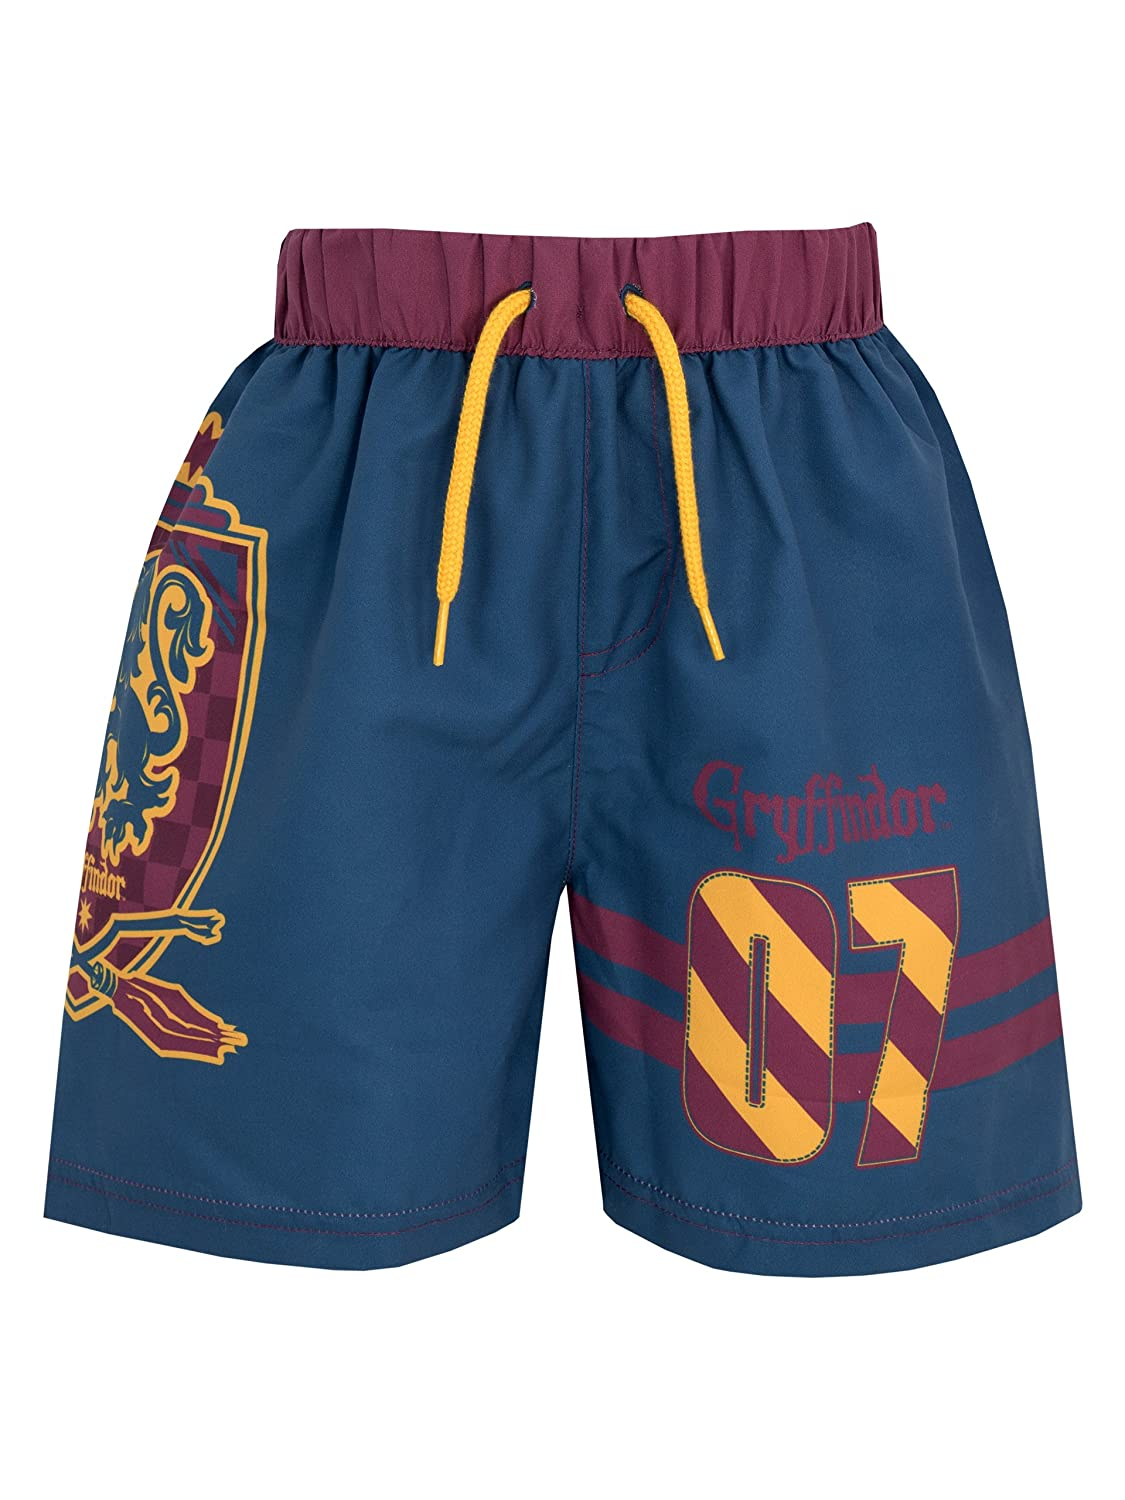 Harry Potter Boys Gryffindor Swim Shorts